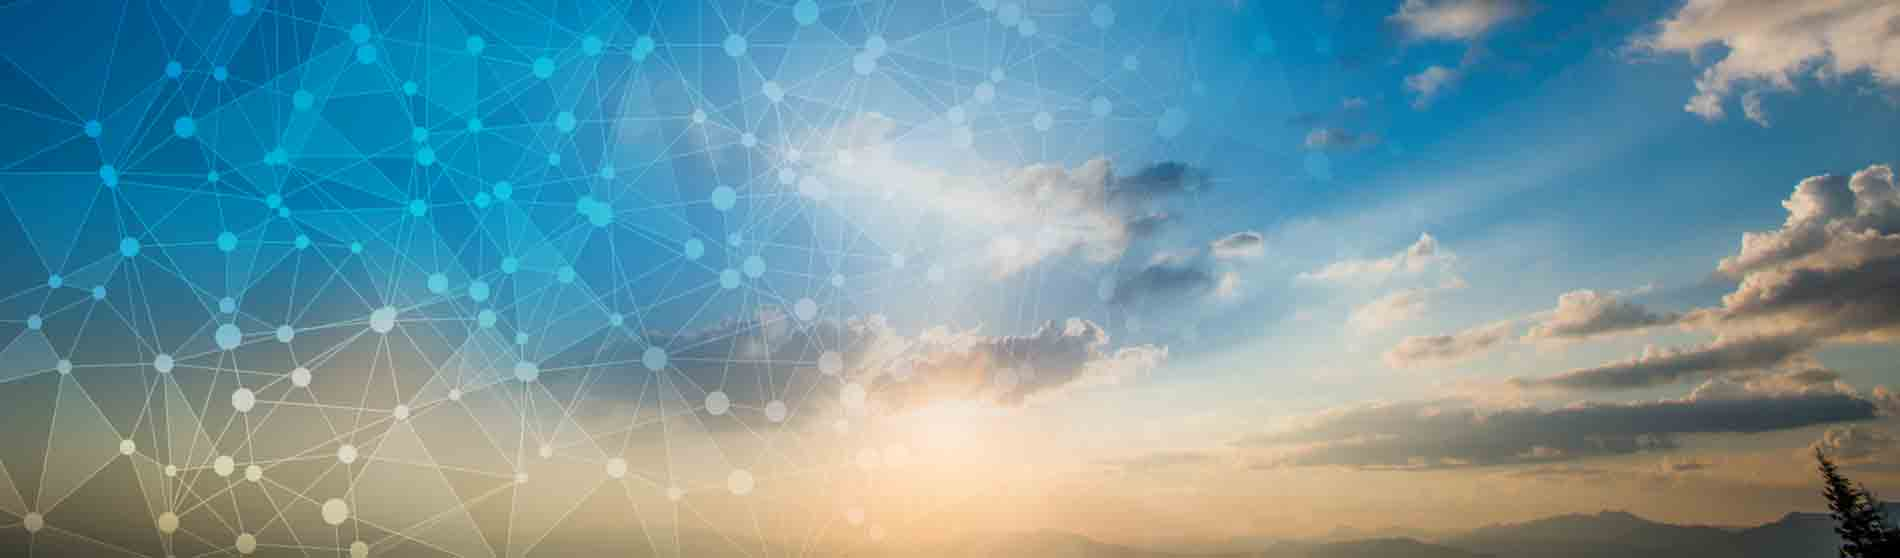 Die OpenText Cloud: flexibel, kostentransparent und sicher